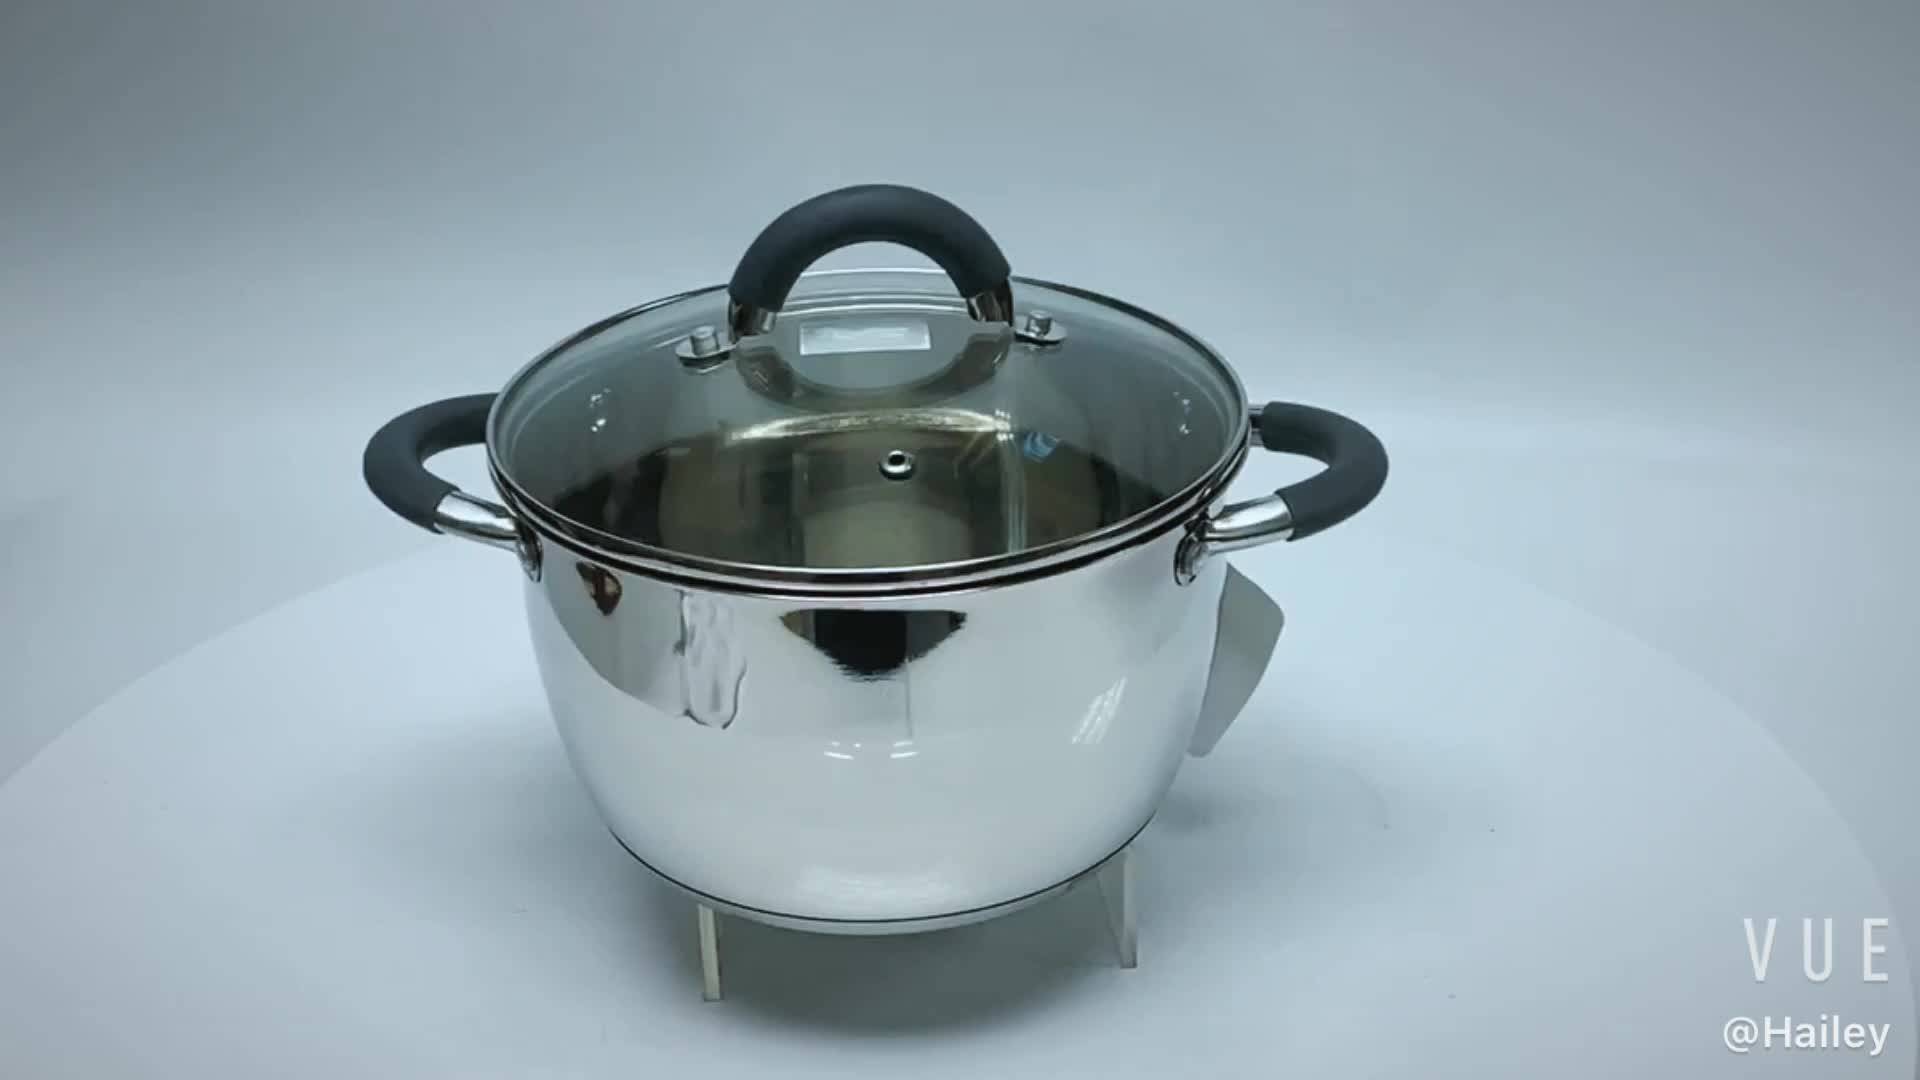 conical shape 20cm stainless steel cookware cooking pot with heat proof handle